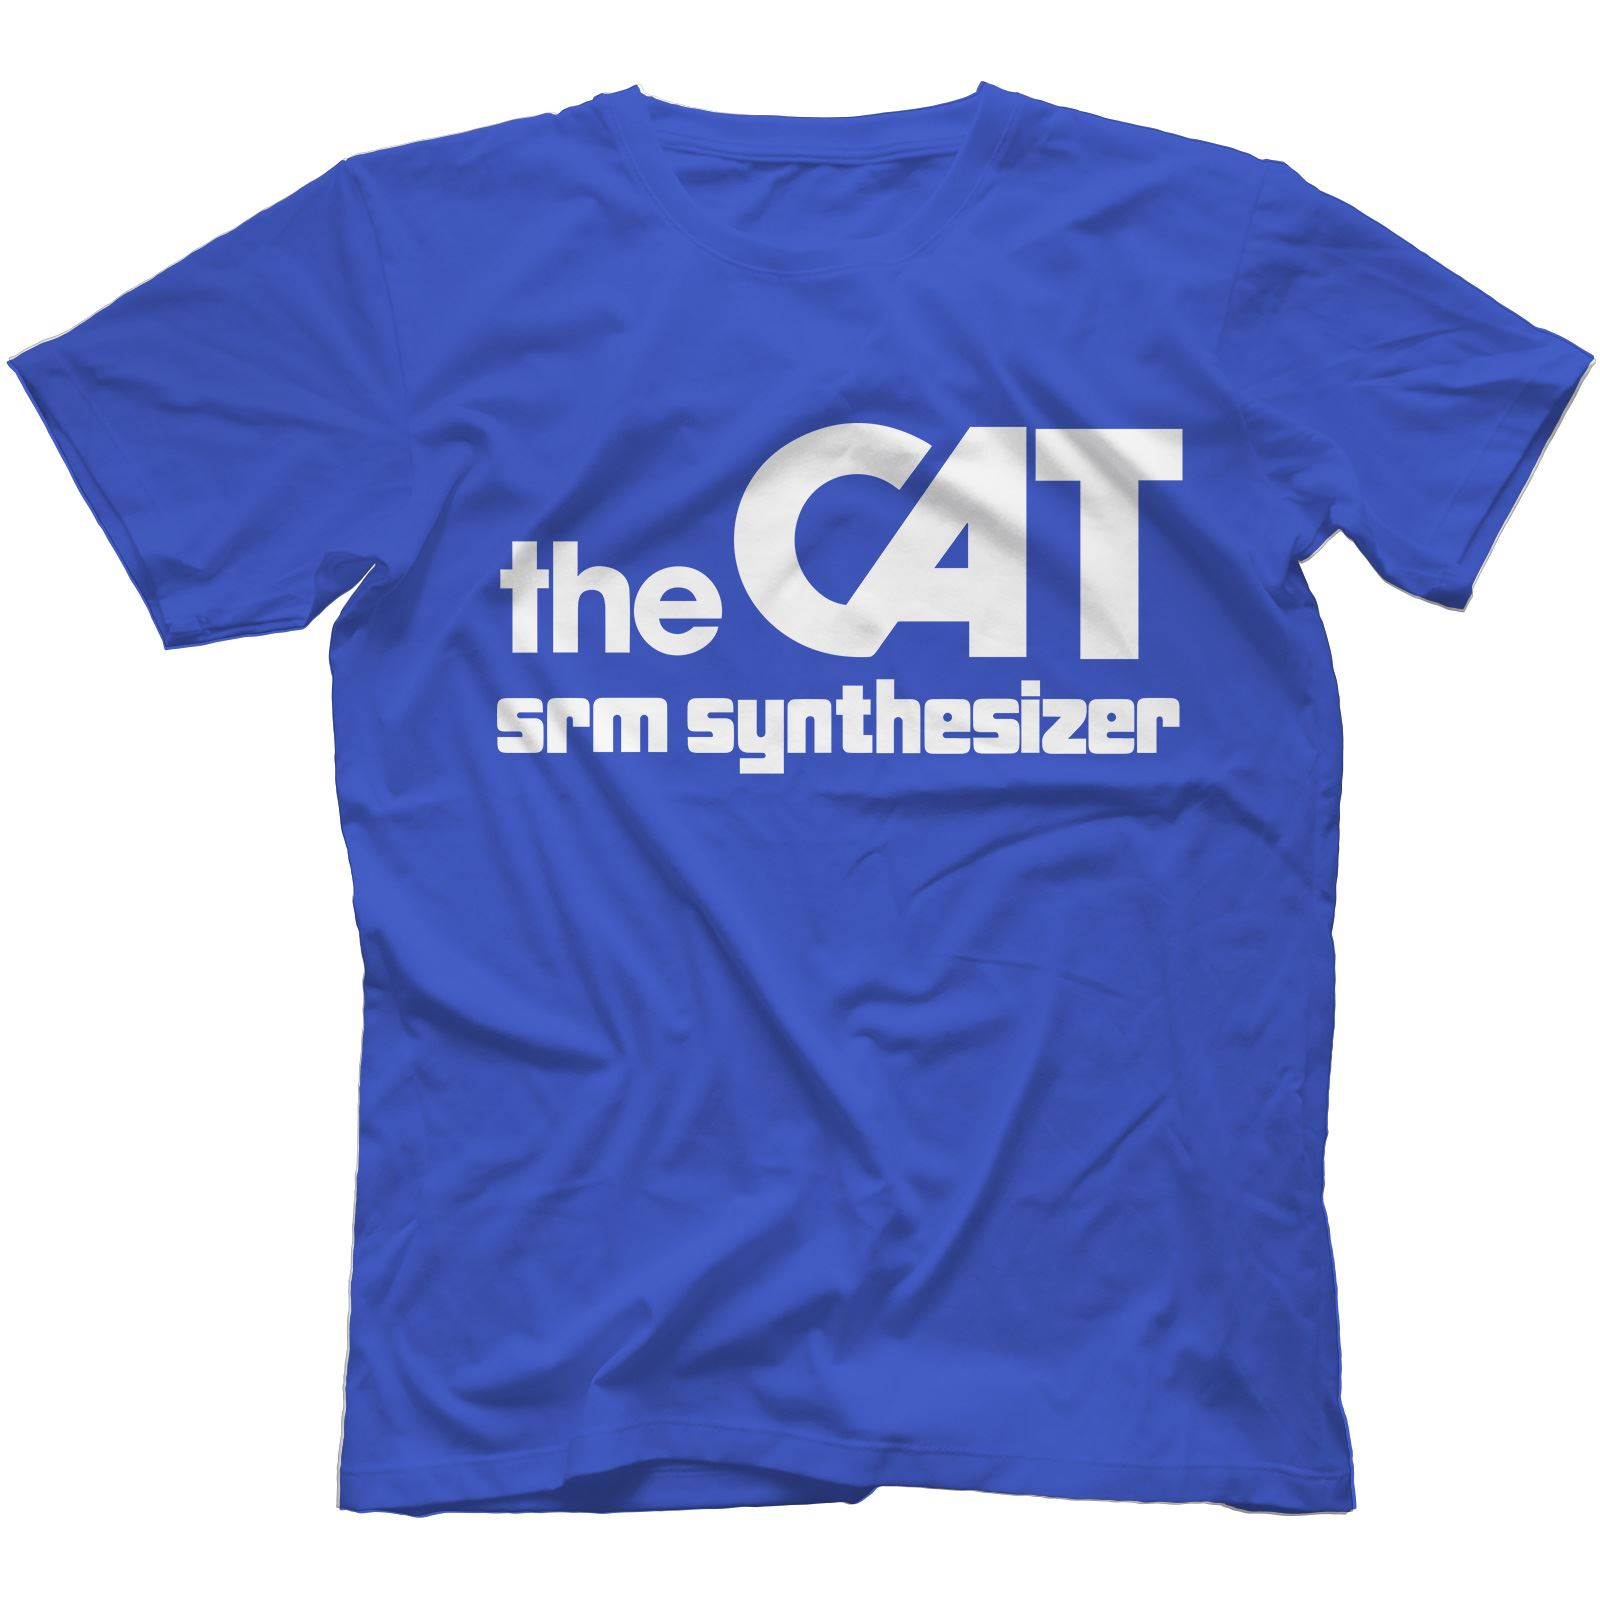 The-Cat-SRM-Synthesiser-T-Shirt-100-Cotton-Retro-Analog-Arp-Odyssey Indexbild 50